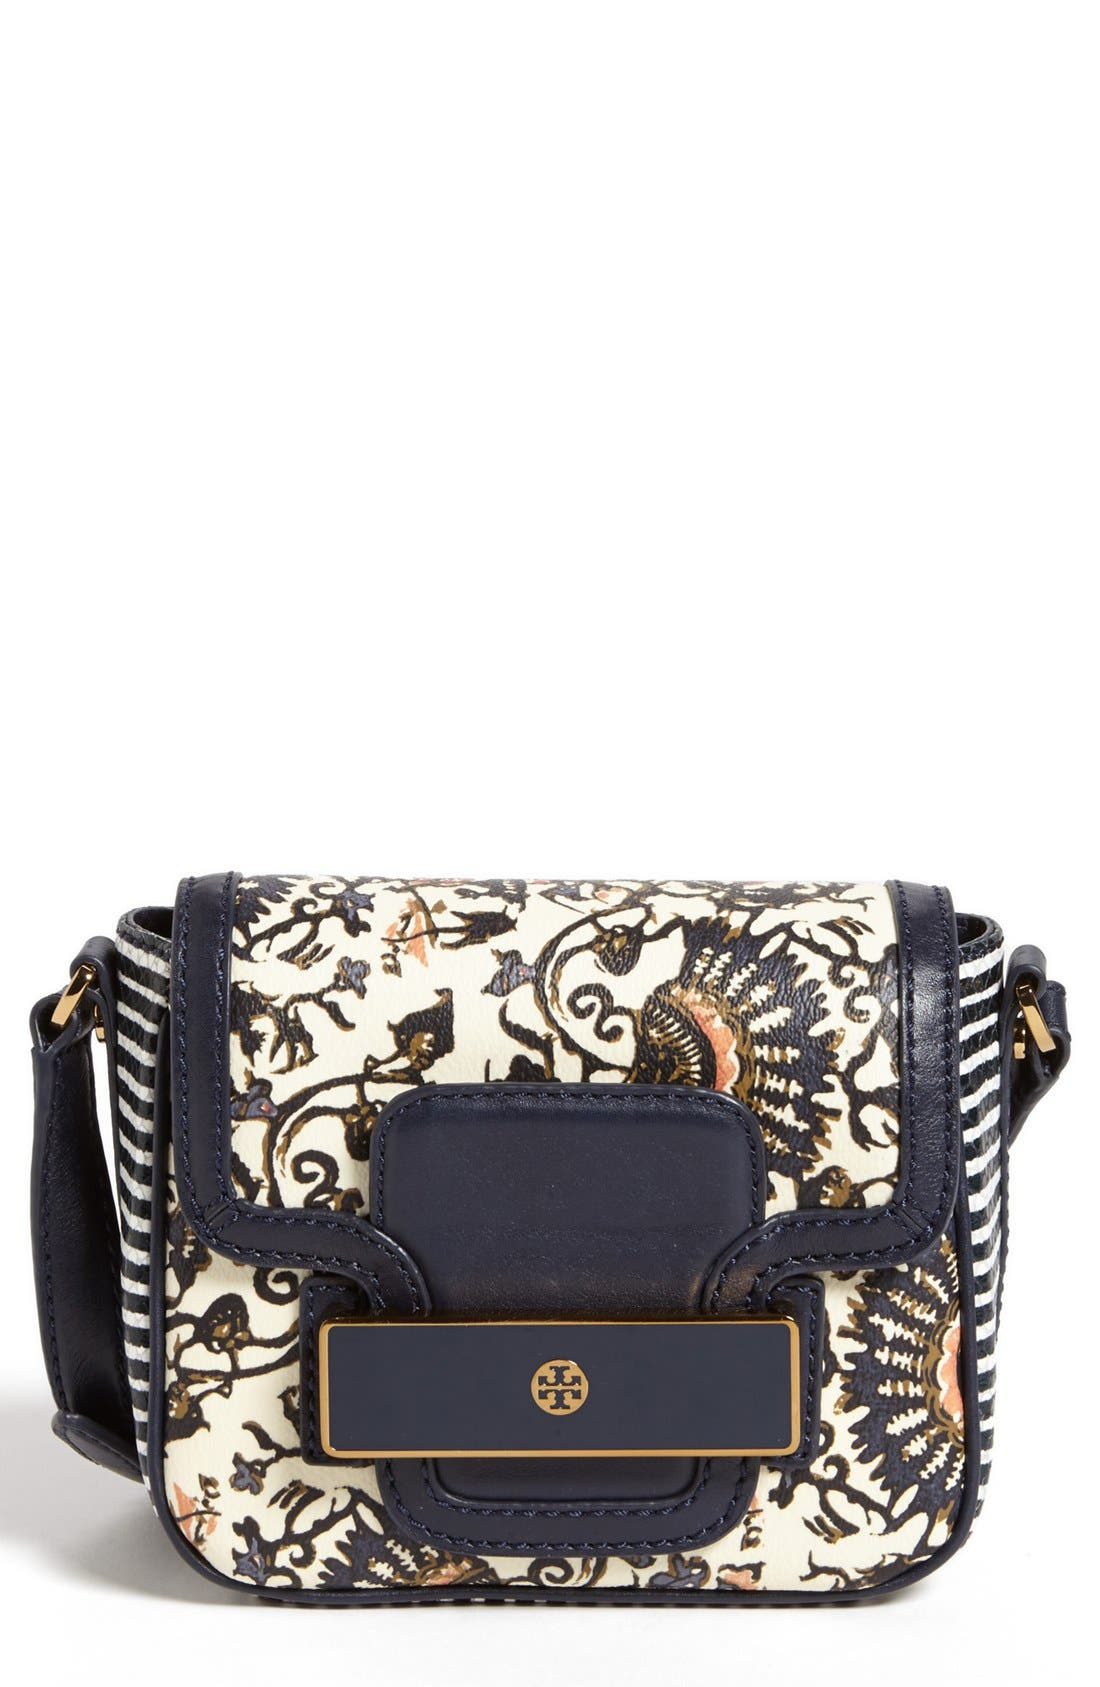 Main Image - Tory Burch 'Jeweled' Leather Crossbody Bag